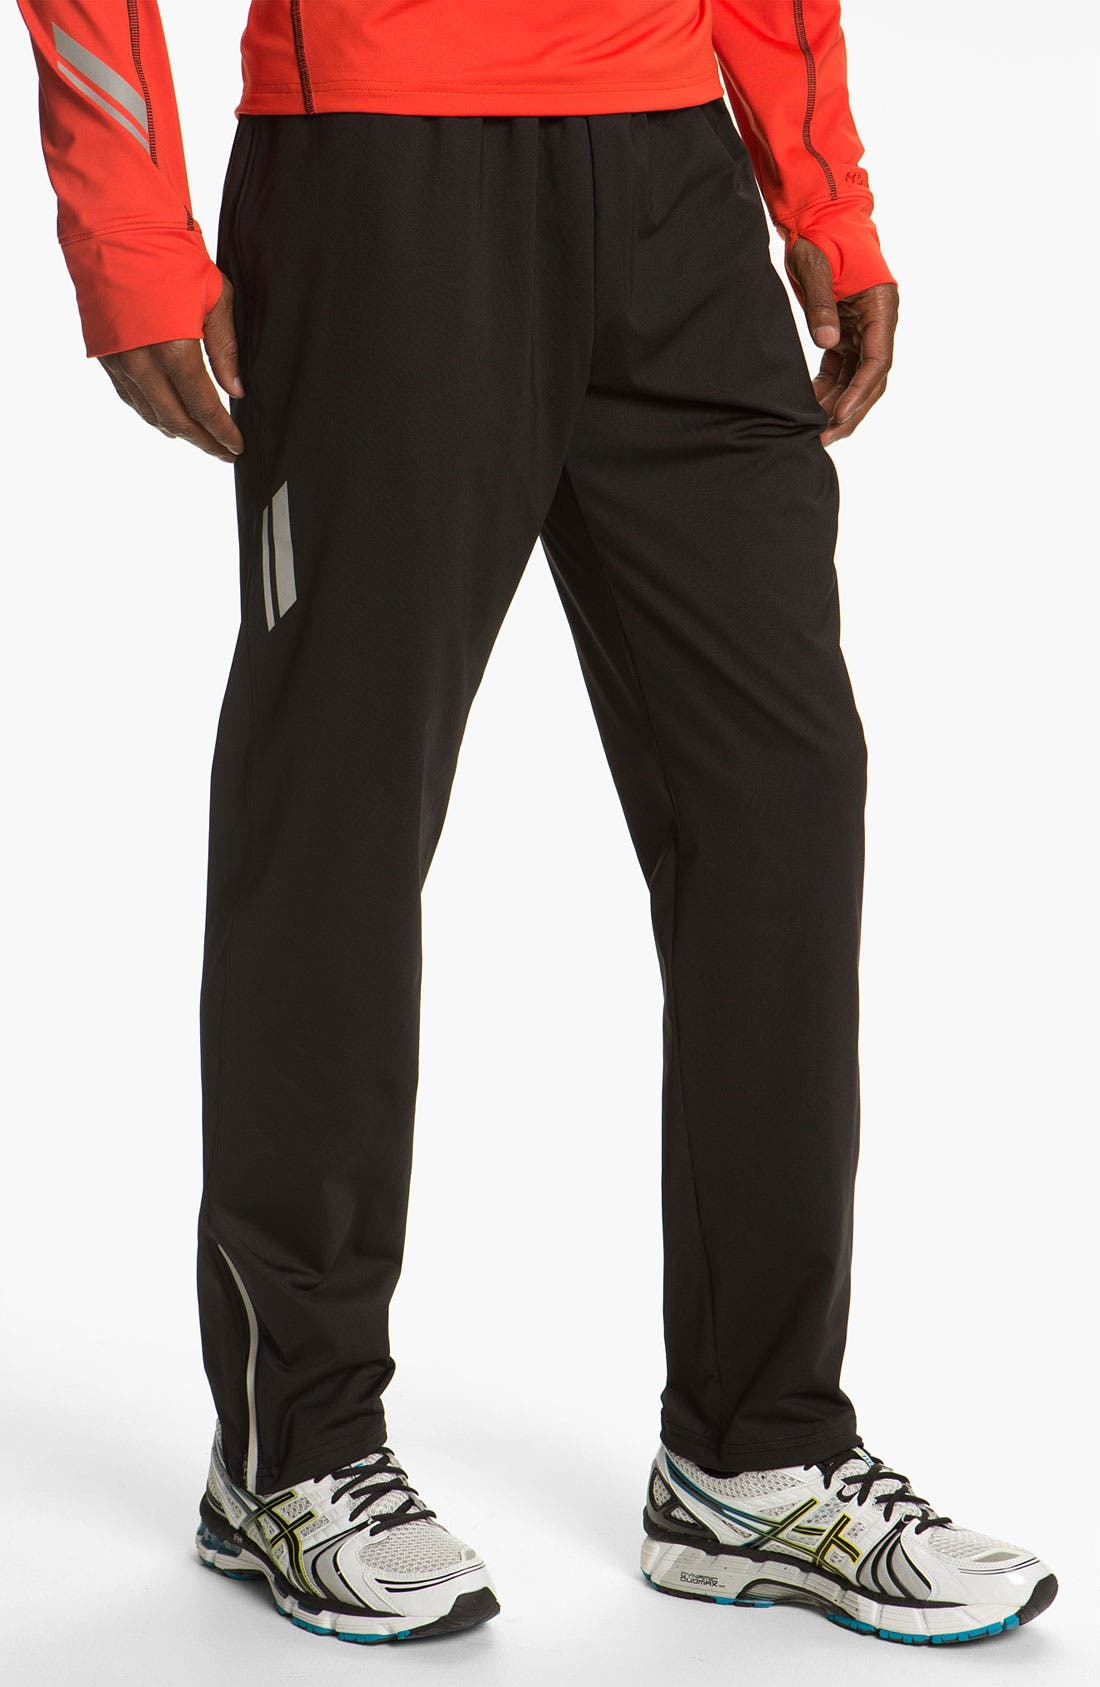 Main Image - Under Armour 'Storm Run' Track Pants